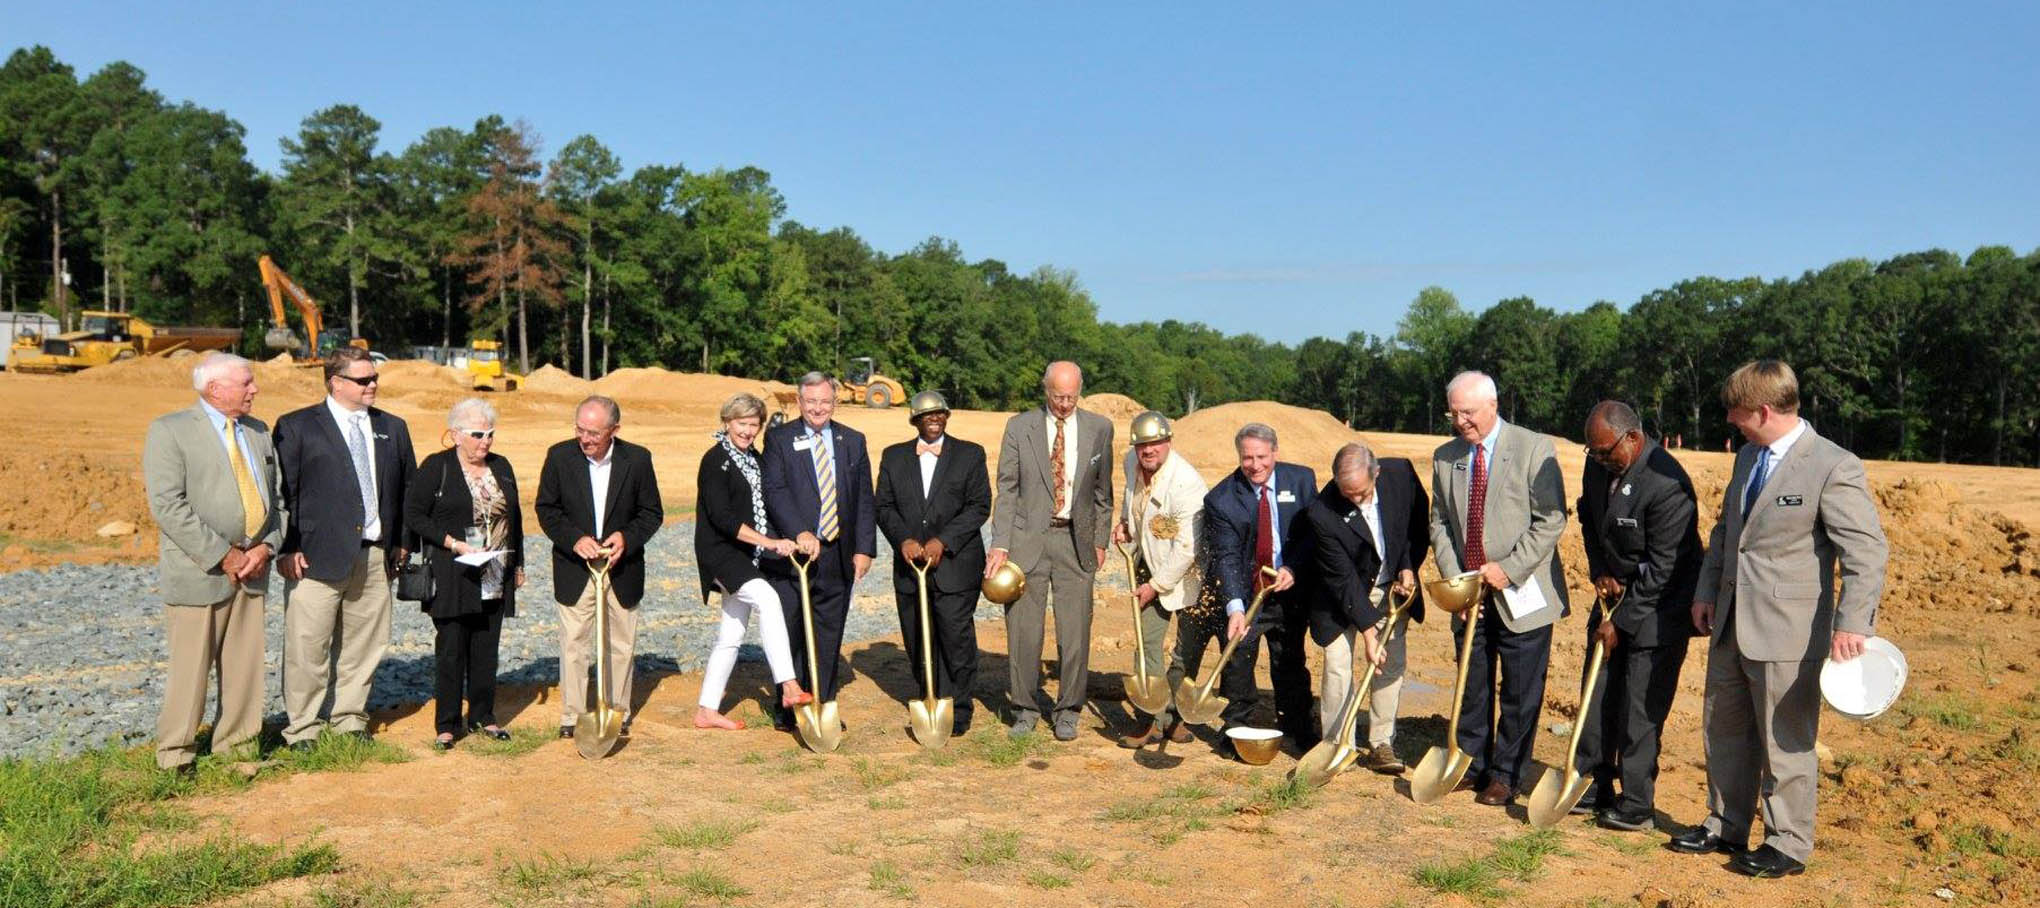 CCCC holds groundbreaking event in Chatham County